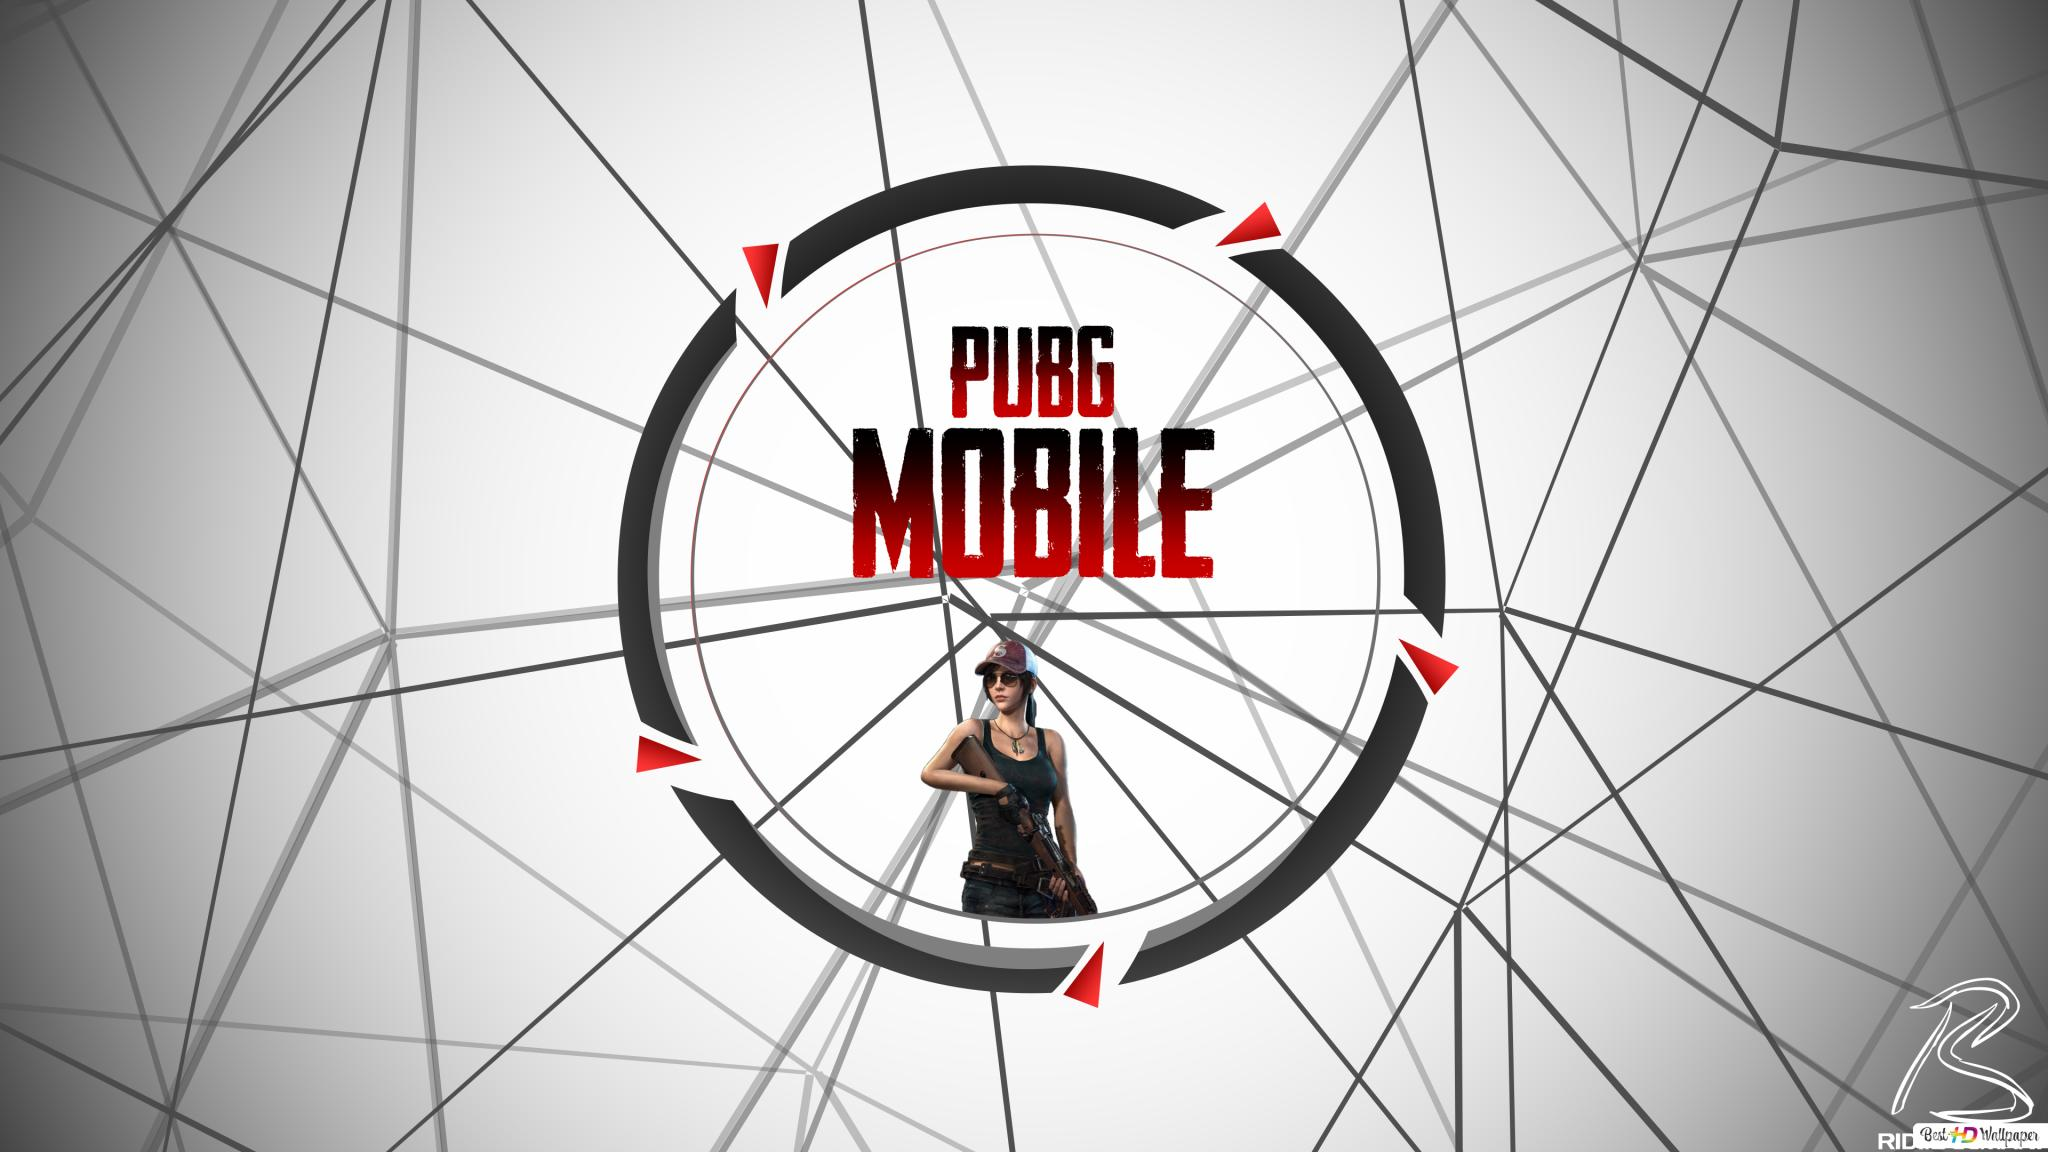 Pubg Mobile Logo Wallpaper Hd: Pubg Mobile Hd HD Wallpaper Download